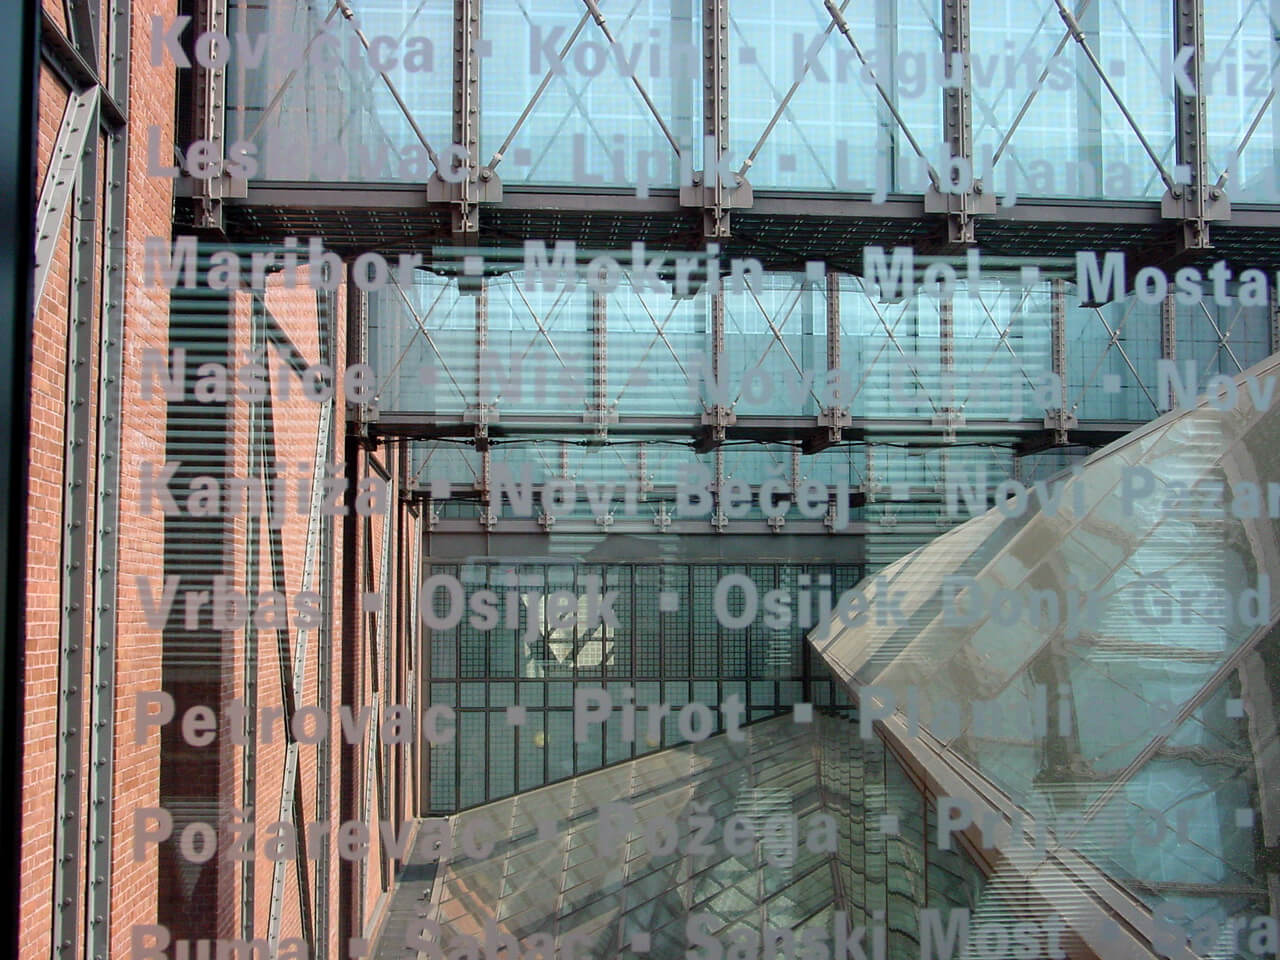 Detail of the glass bridges with the names of the communities destroyed during the Holocaust, at the United States Holocaust Memorial Museum